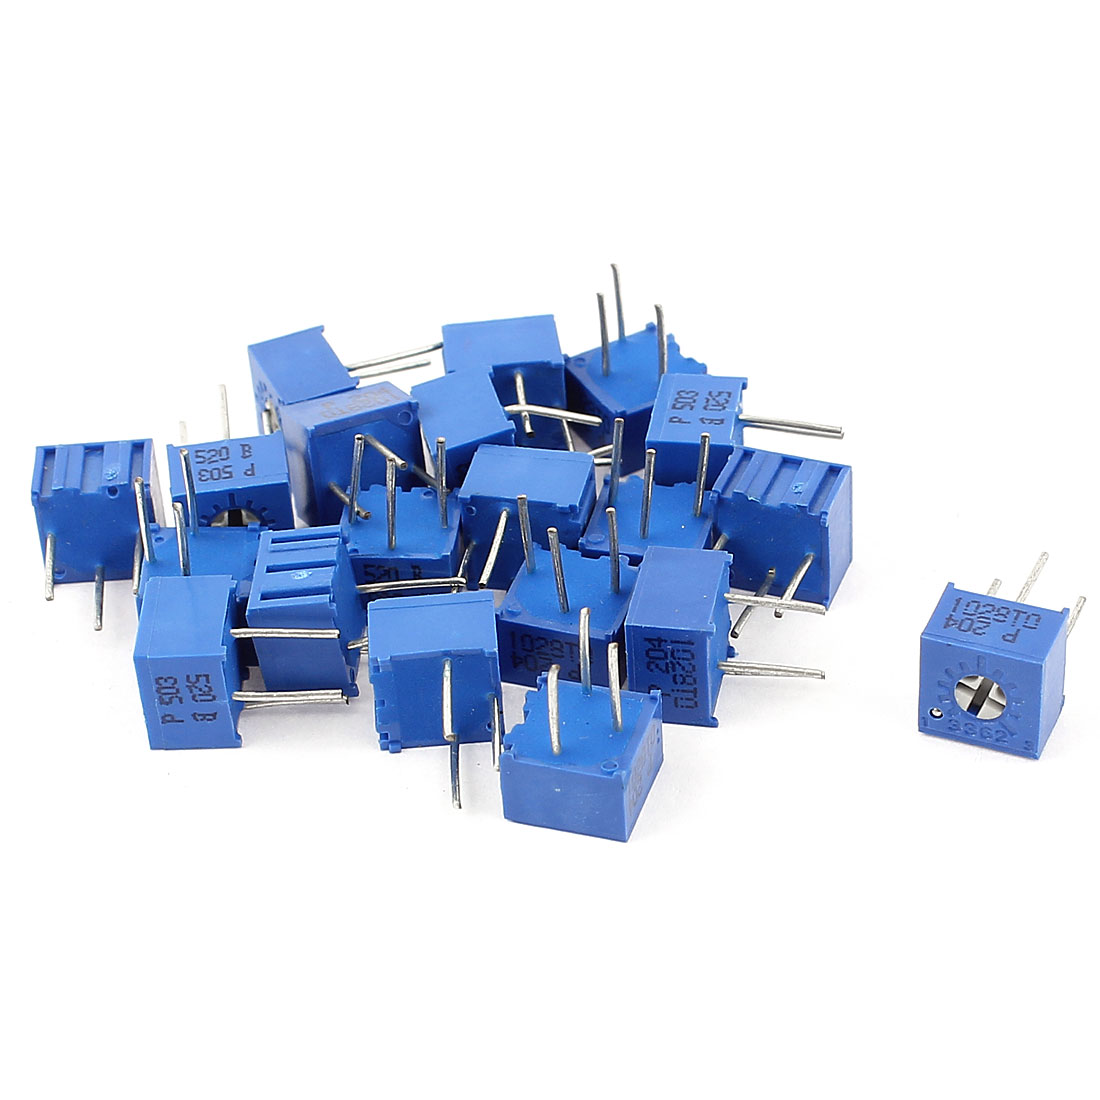 20Pcs Potentiometer Trimmer Variable Resistor 3362P-204 3362P-503